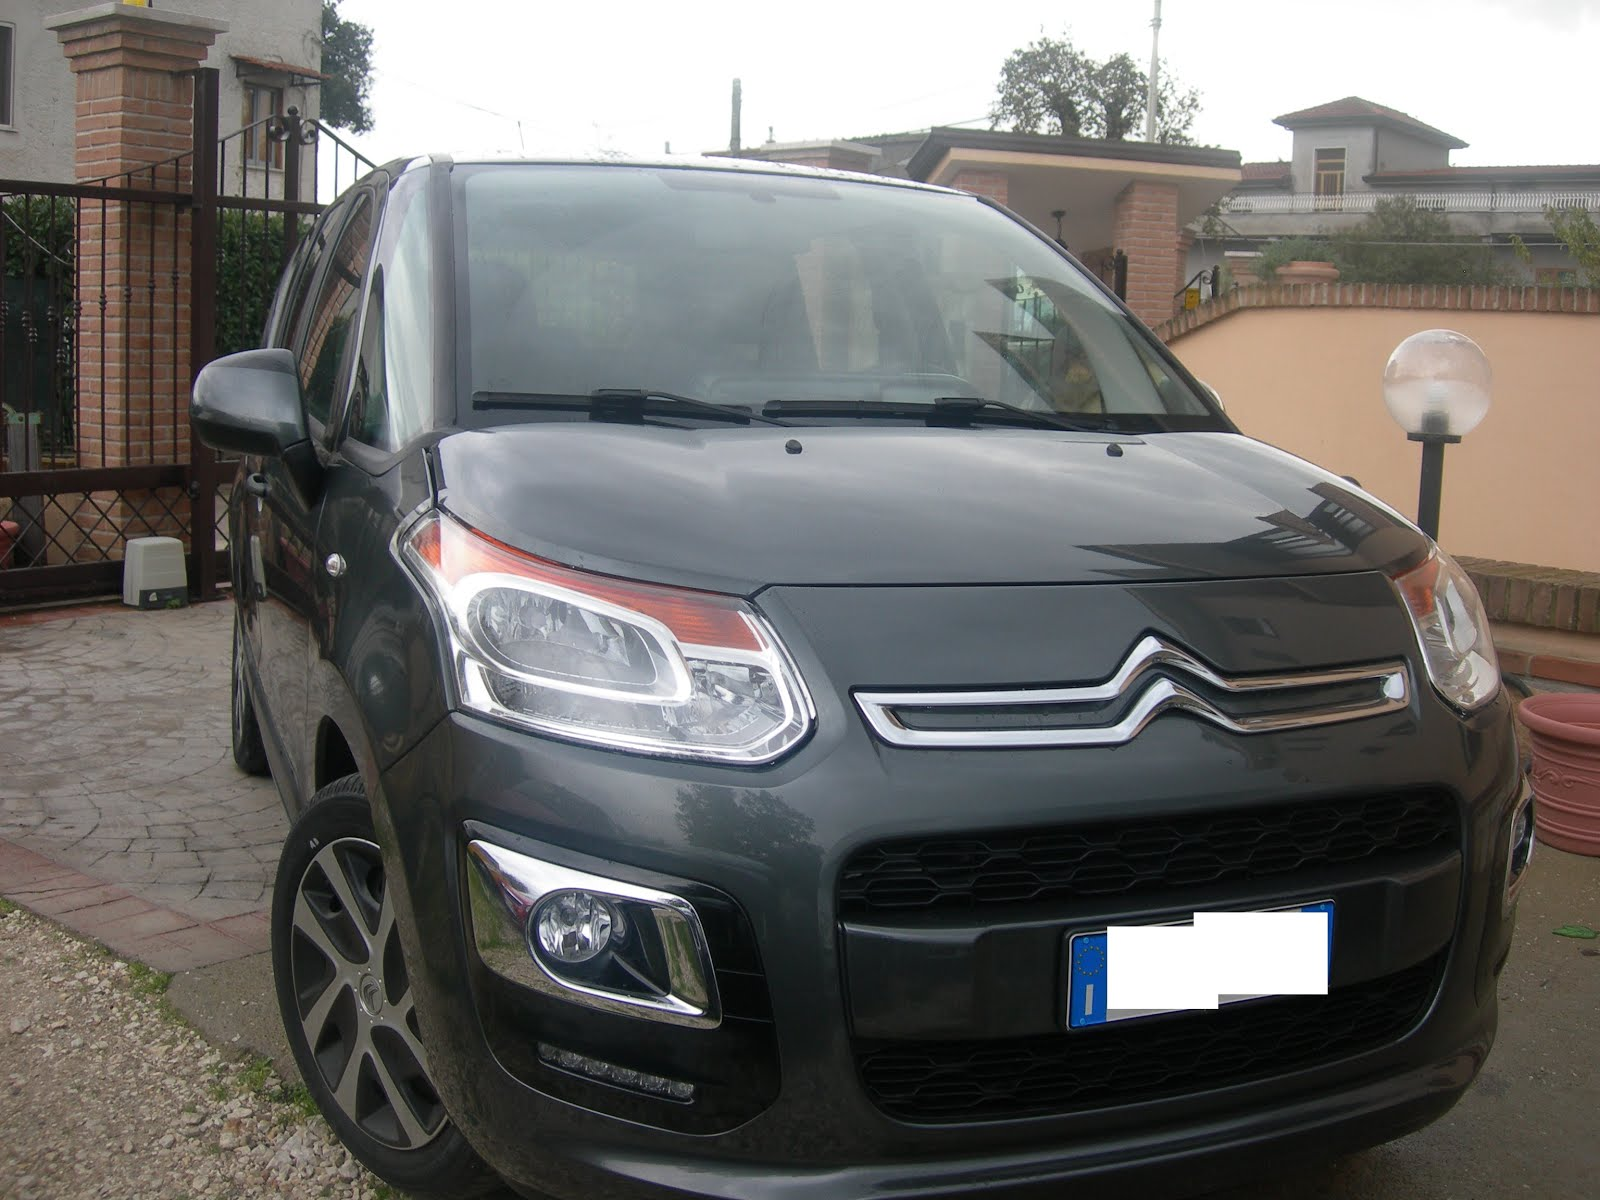 Citroen C3 Picasso 1.4 benz 95 CV 59.000 km Anno 2013 full optional Prezzo 8.000,00 euro